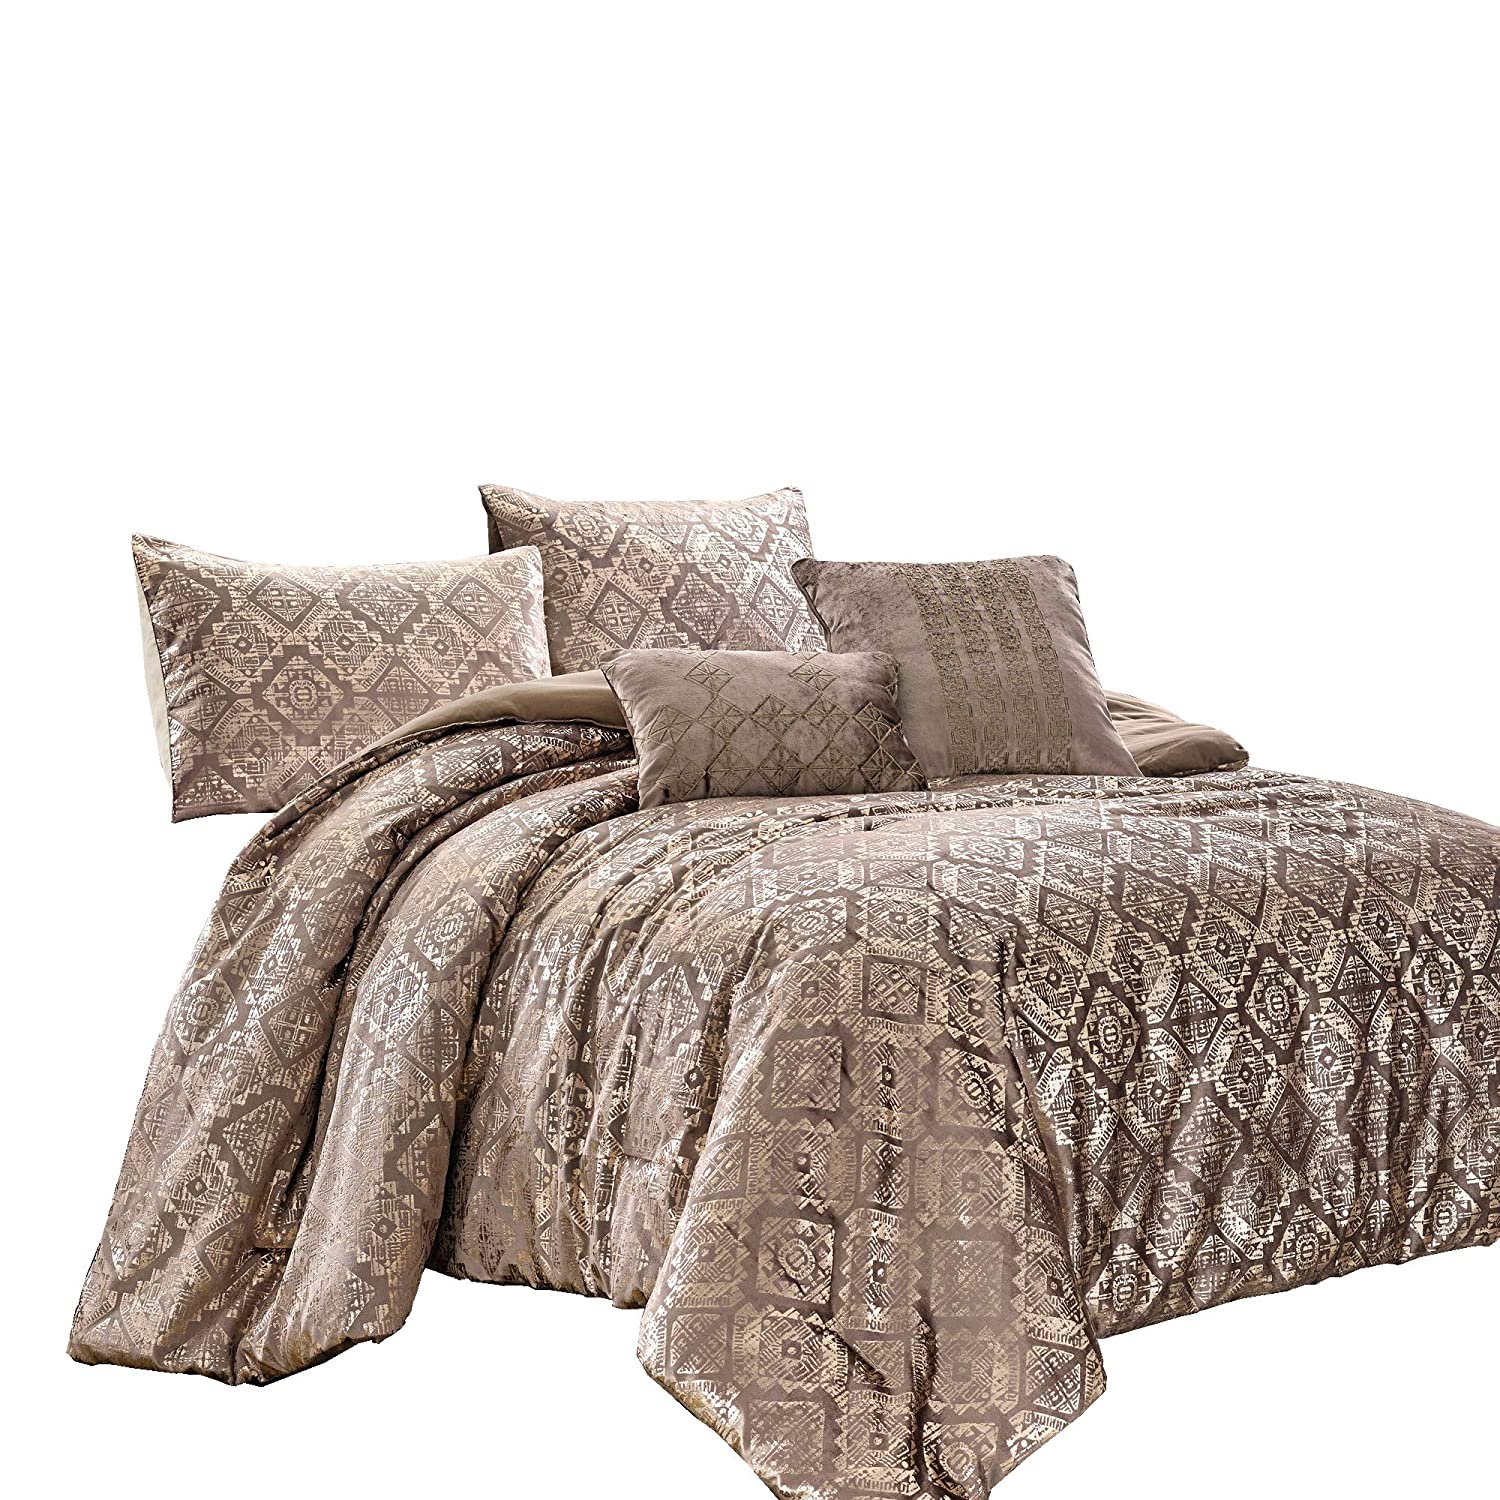 Chezmoi Collection Damon 4-Piece Comforter Set Twin Size - Metallic Glitter Champagne Gold Velvet Bedding Set with Embroidered Cushion Pillows